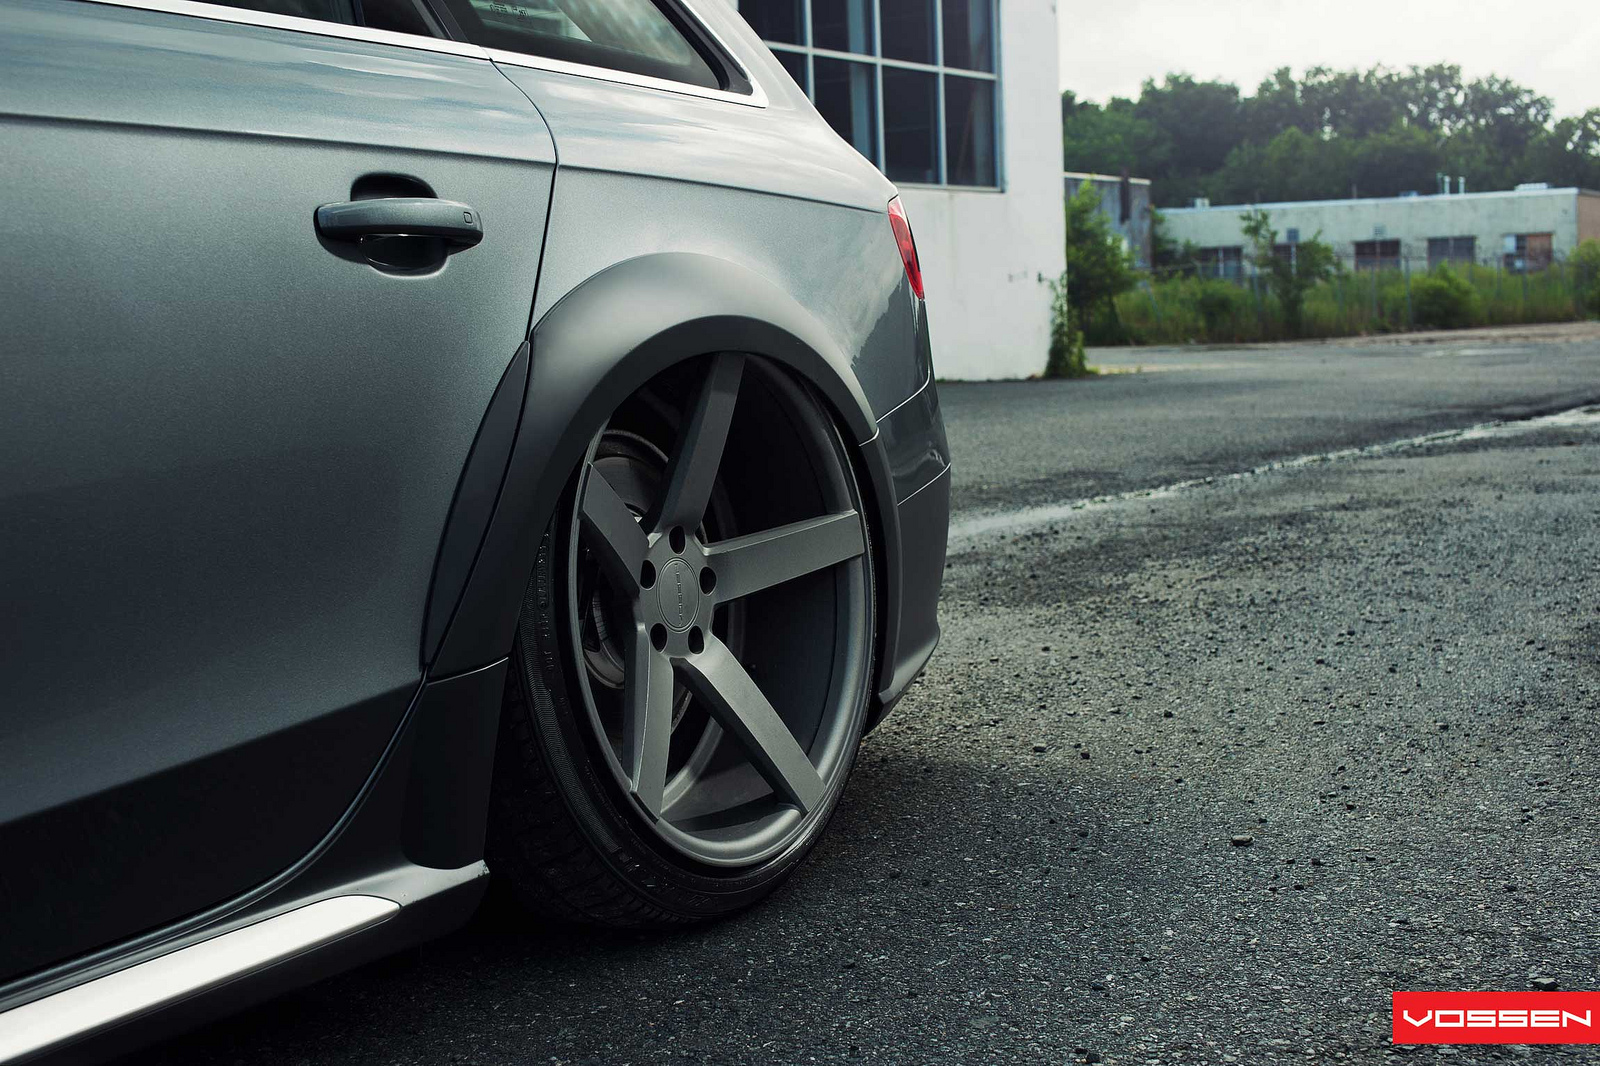 Audi a7 on vossen wheels photo gallery_11 jpg 1600 1066 low is a lifestyle pinterest lifestyle